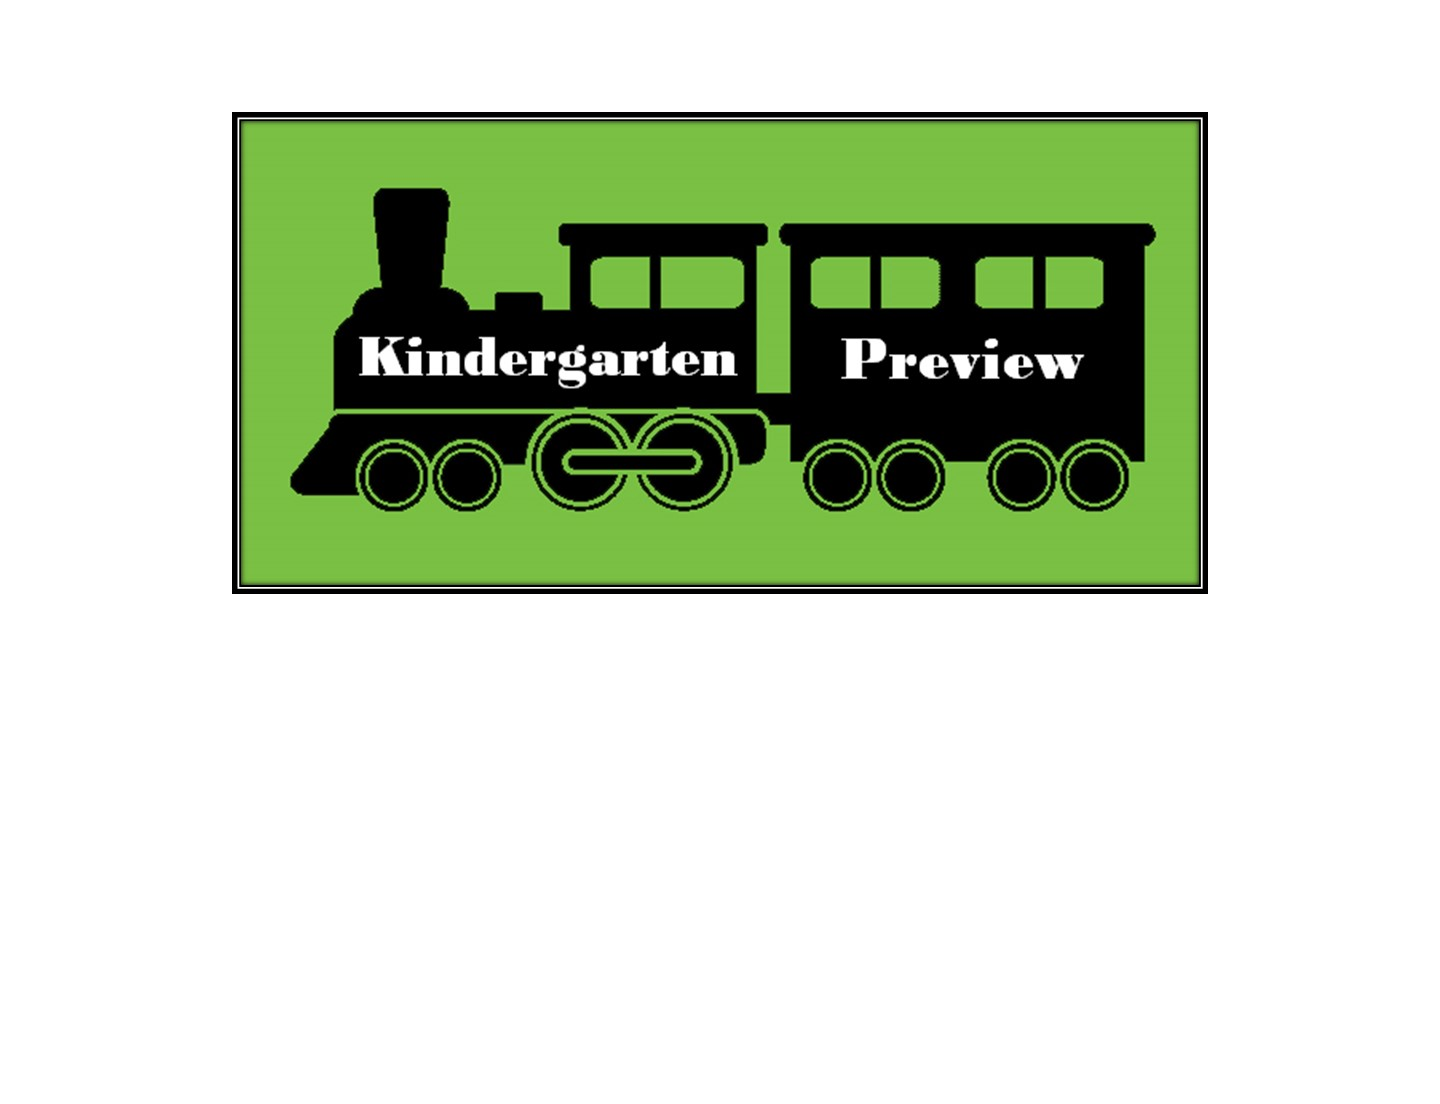 Kindergarten Preview Train